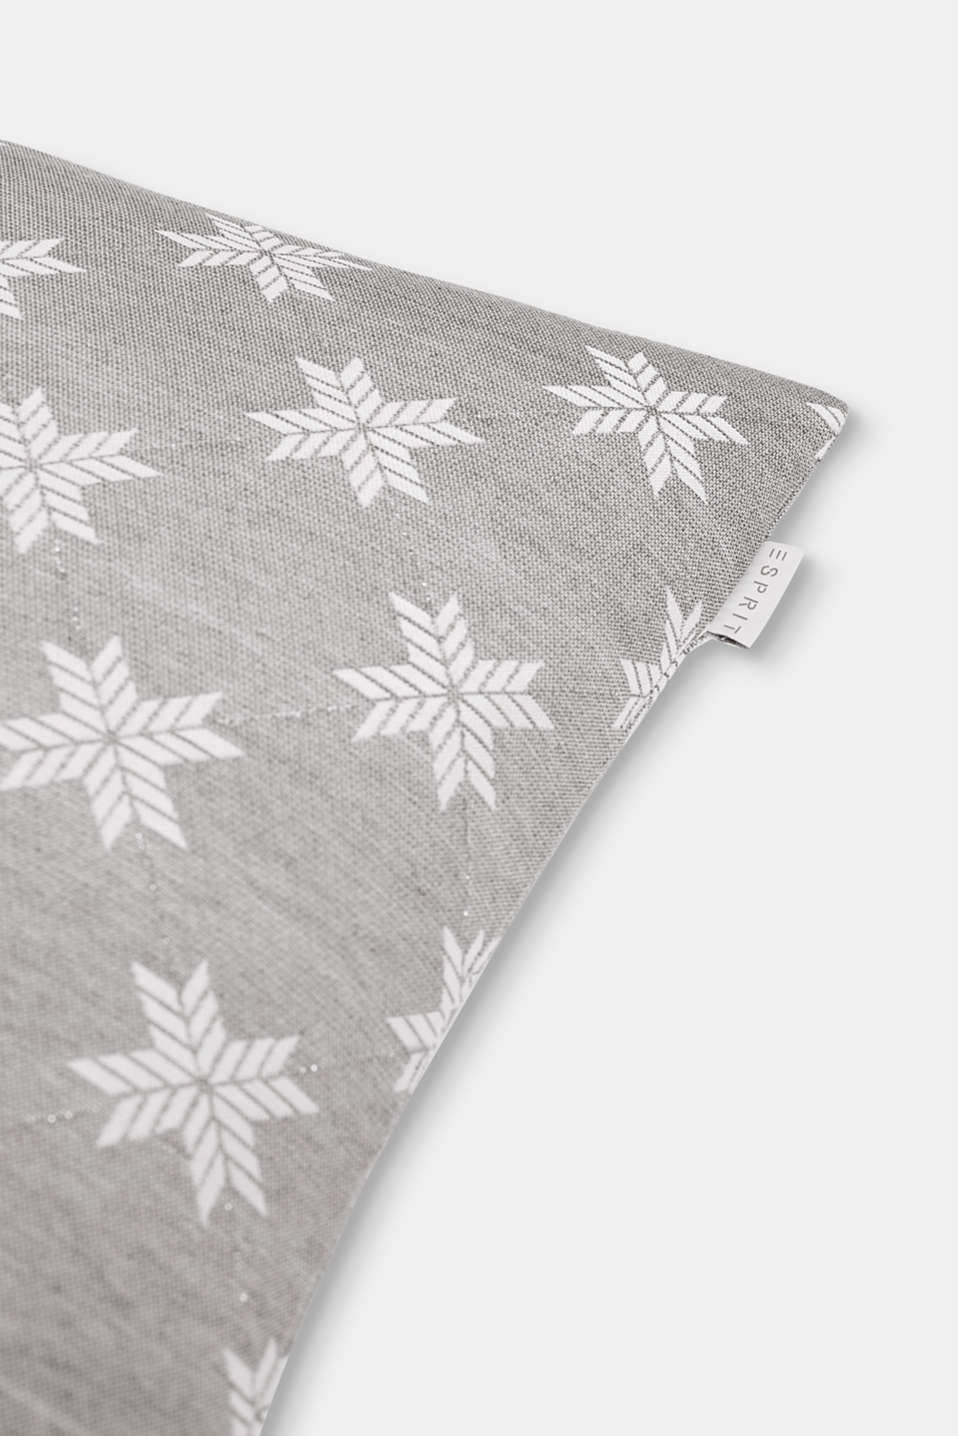 Cushion cover with a star motif, GREY, detail image number 1